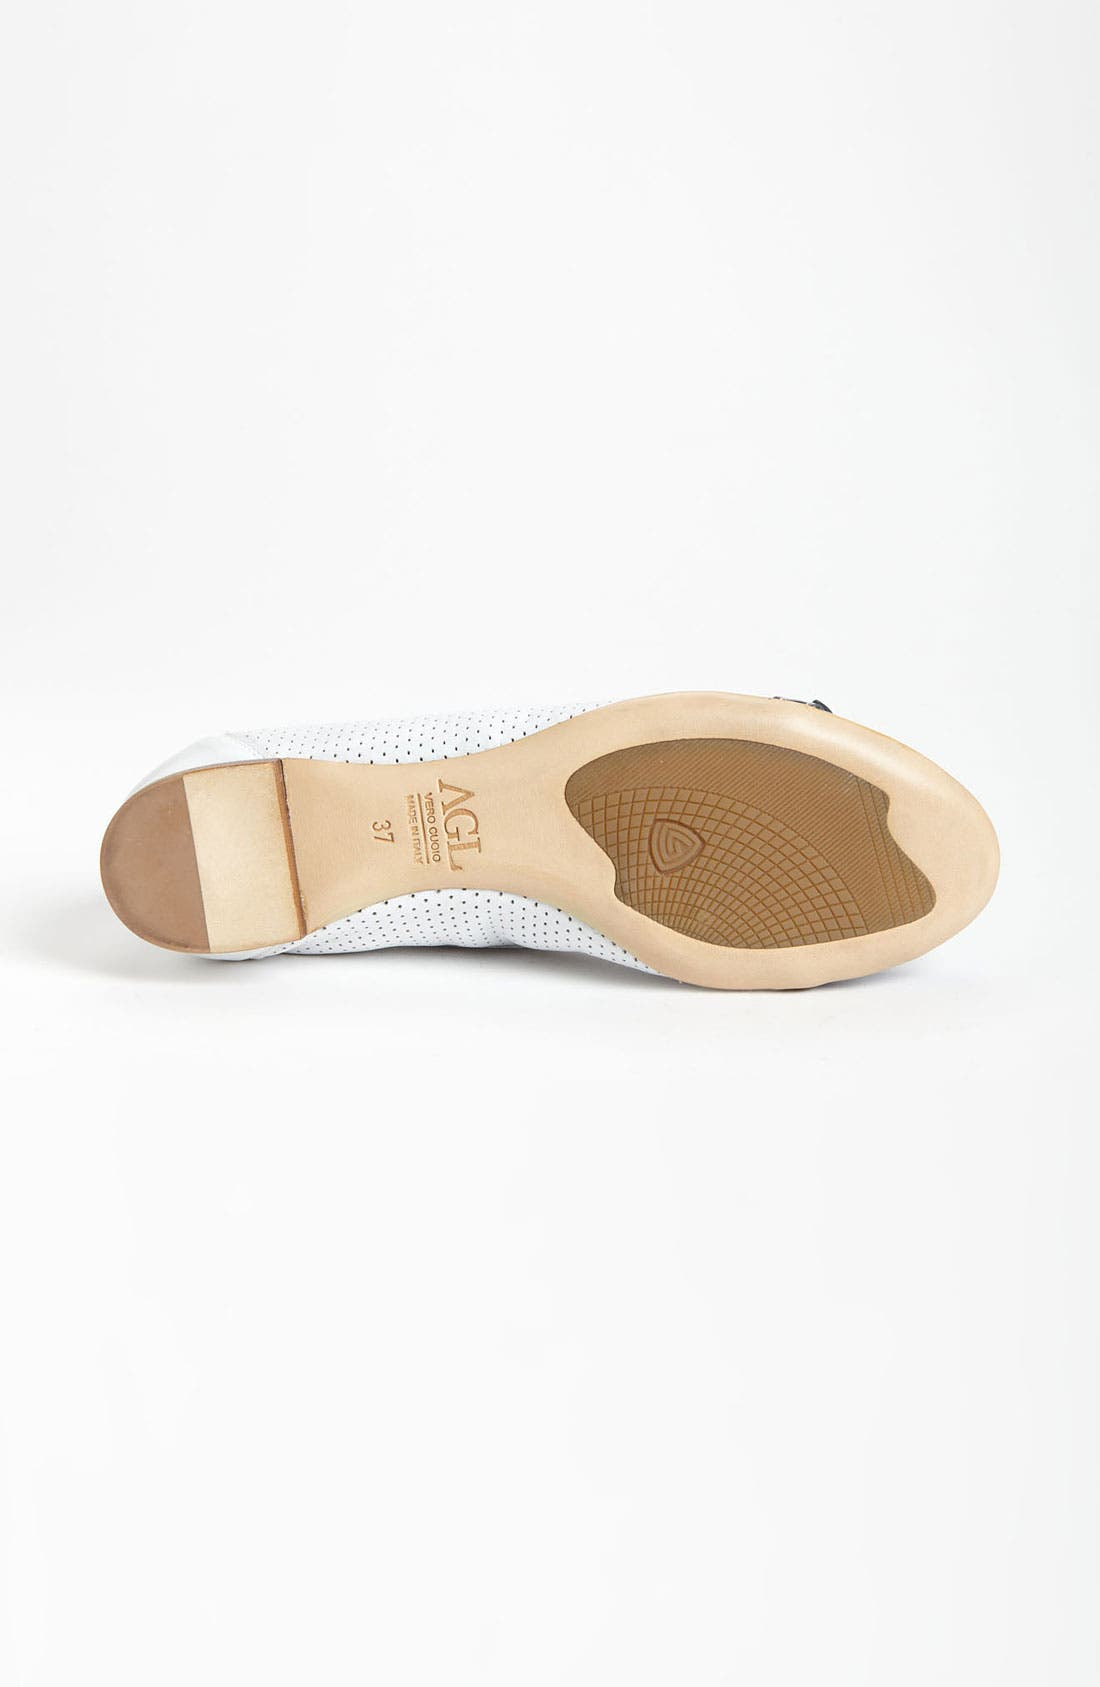 Alternate Image 4  - Attilio Giusti Leombruni Perforated Toe Cap Ballet Flat